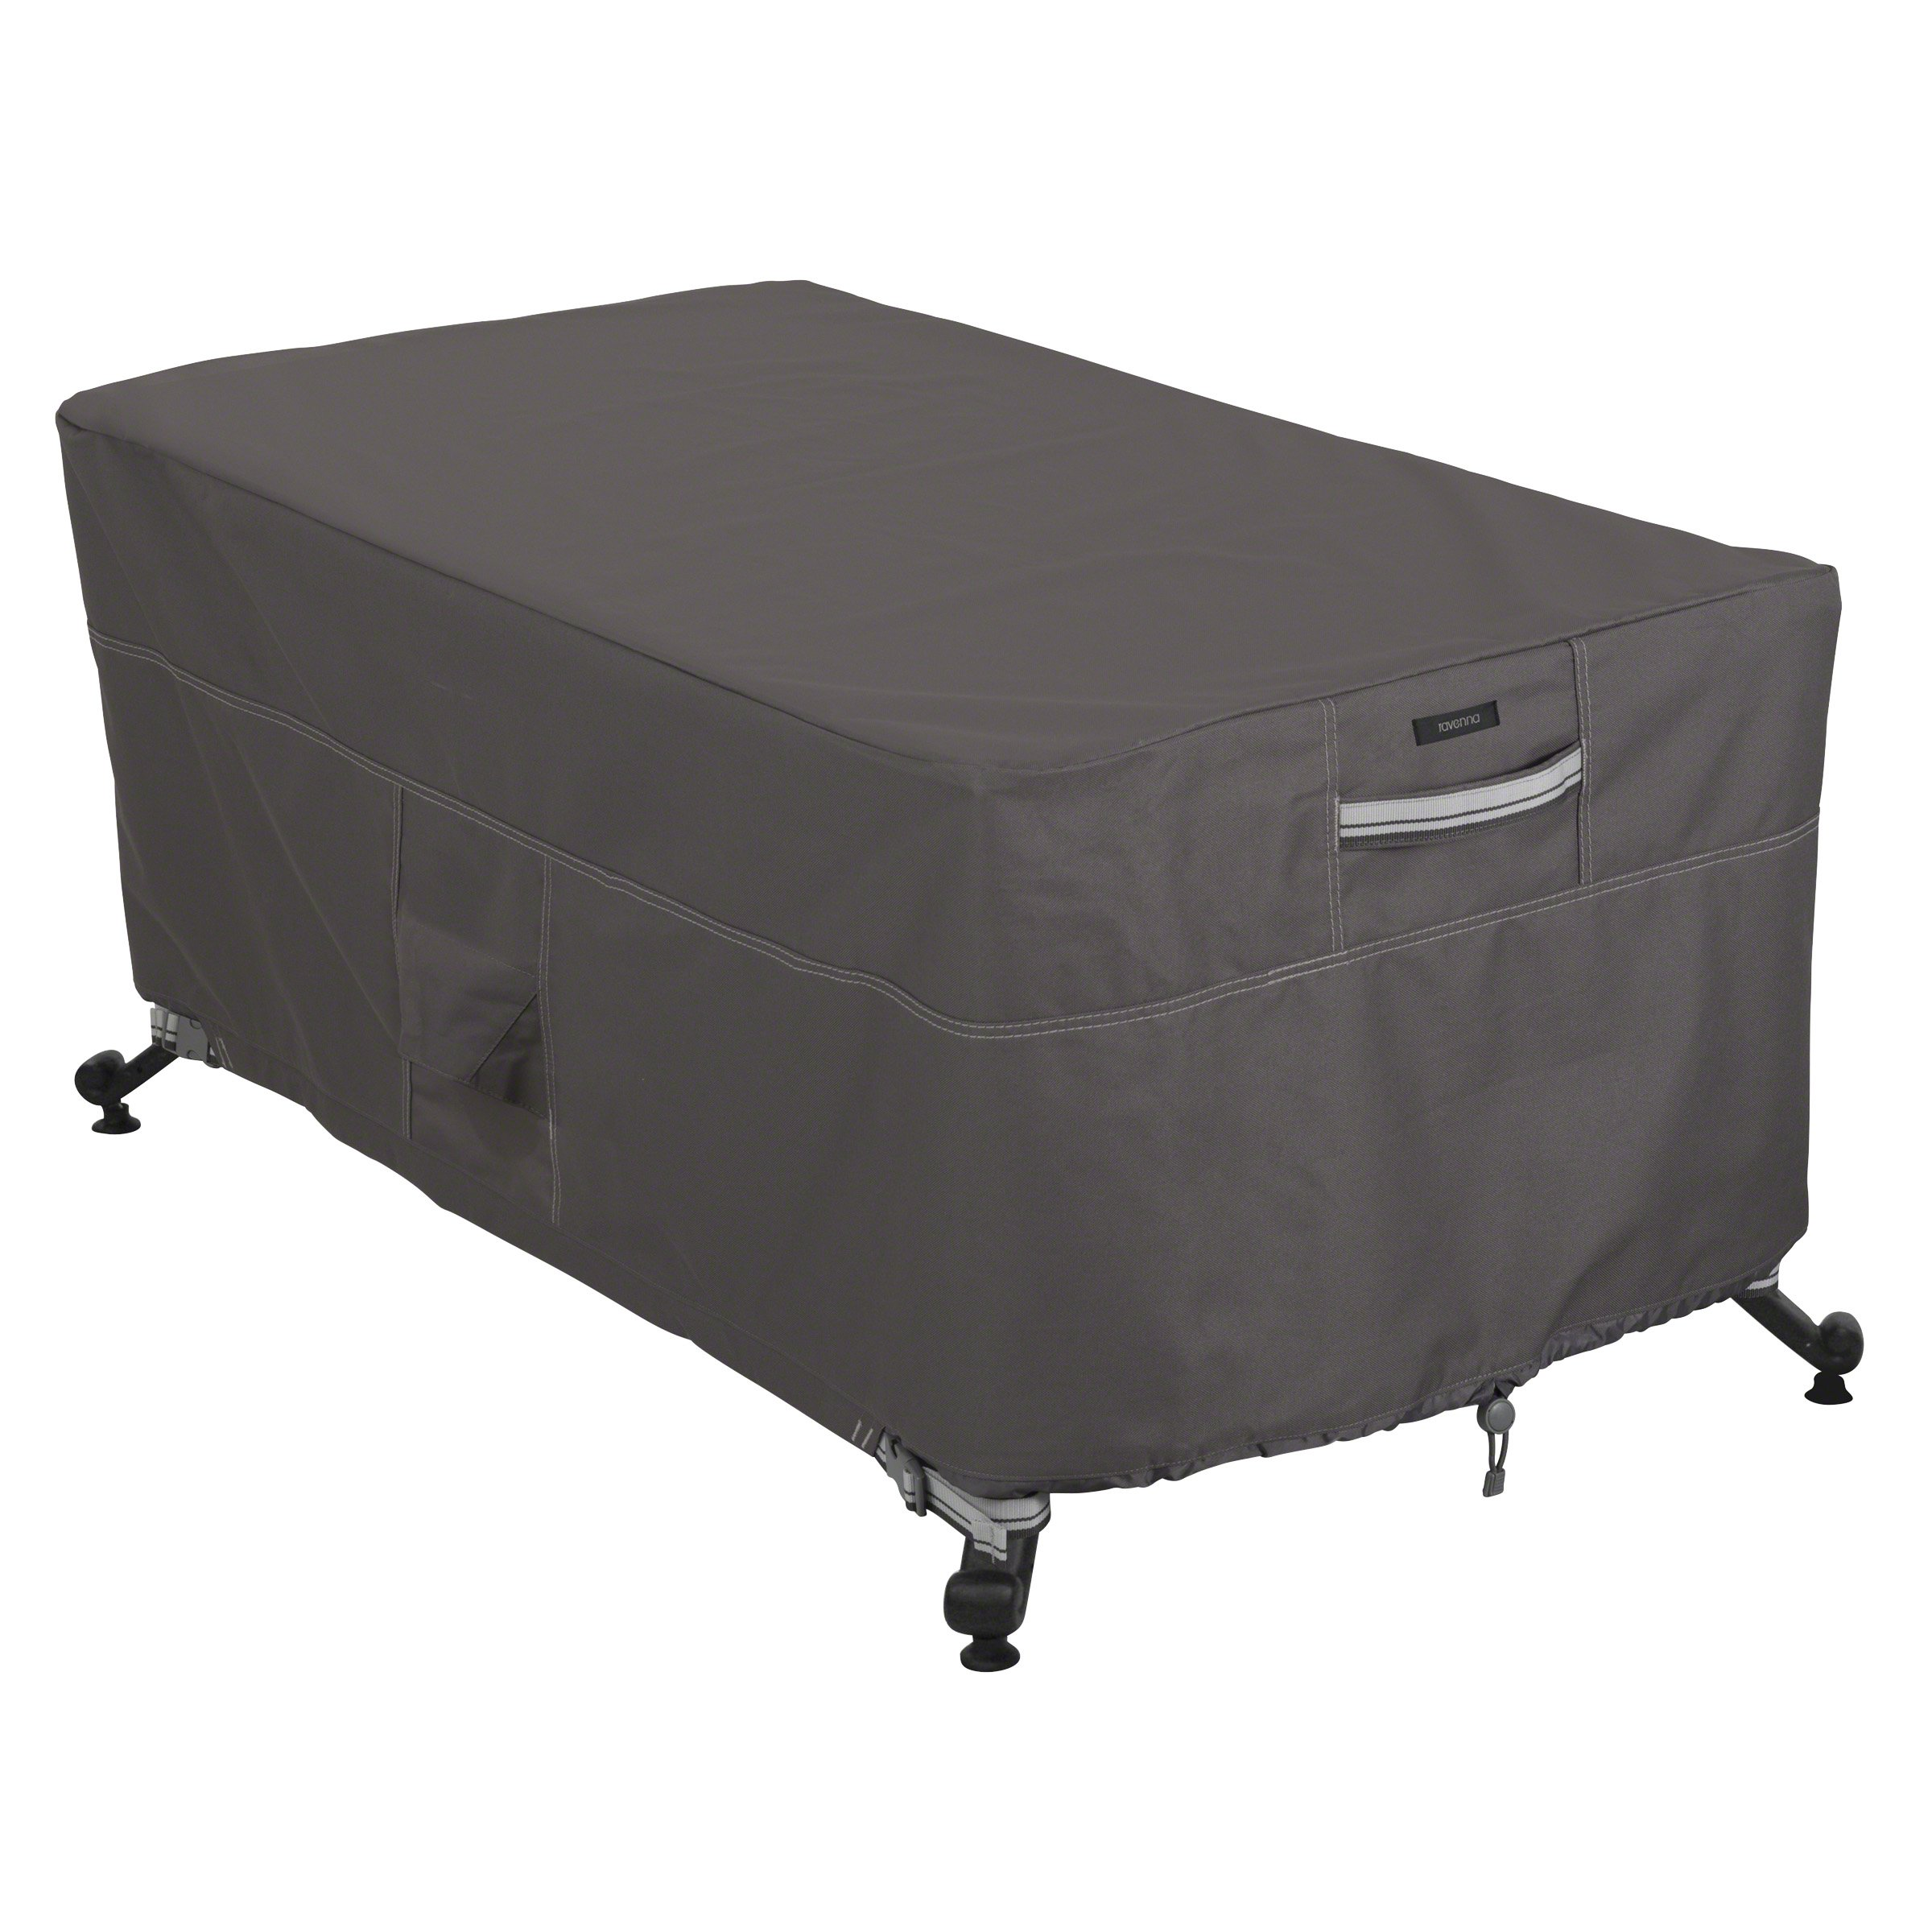 Classic Accessories Ravenna 56'' Rectangular Fire Pit Table Cover - Premium Outdoor Cover with Durable and Water Resistant Fabric (55-598-015101-EC)